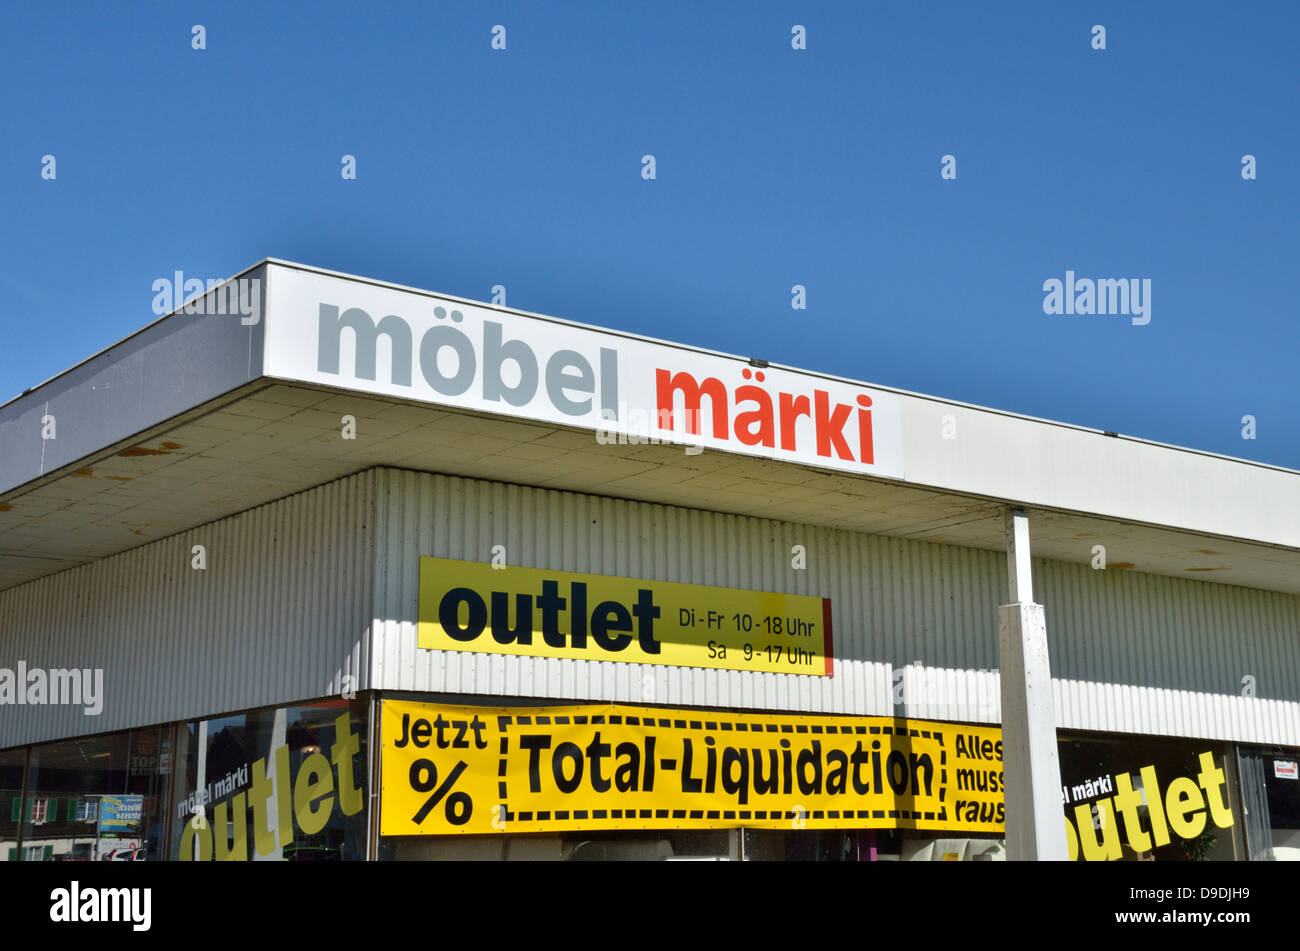 Mobel stock photos mobel stock images alamy - Japanische designer mobel ...